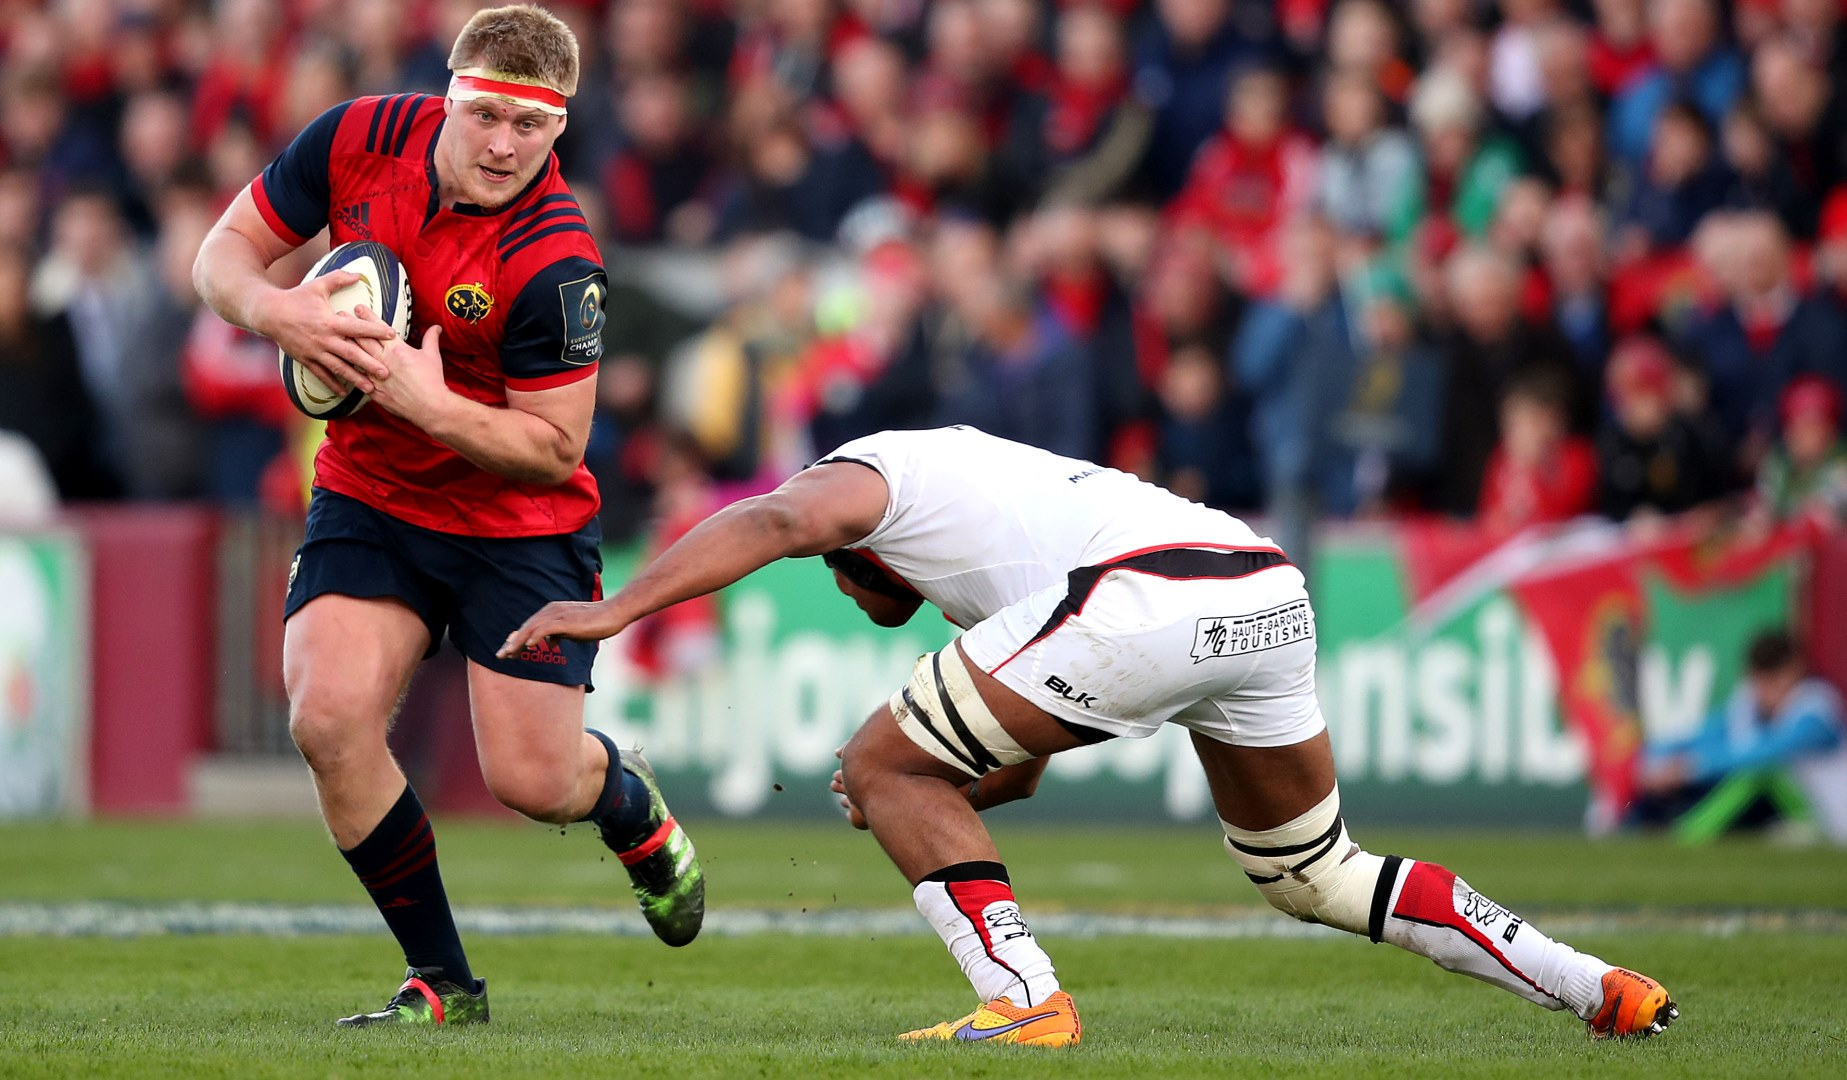 LionsWatch: Ryan roars as Munster march on